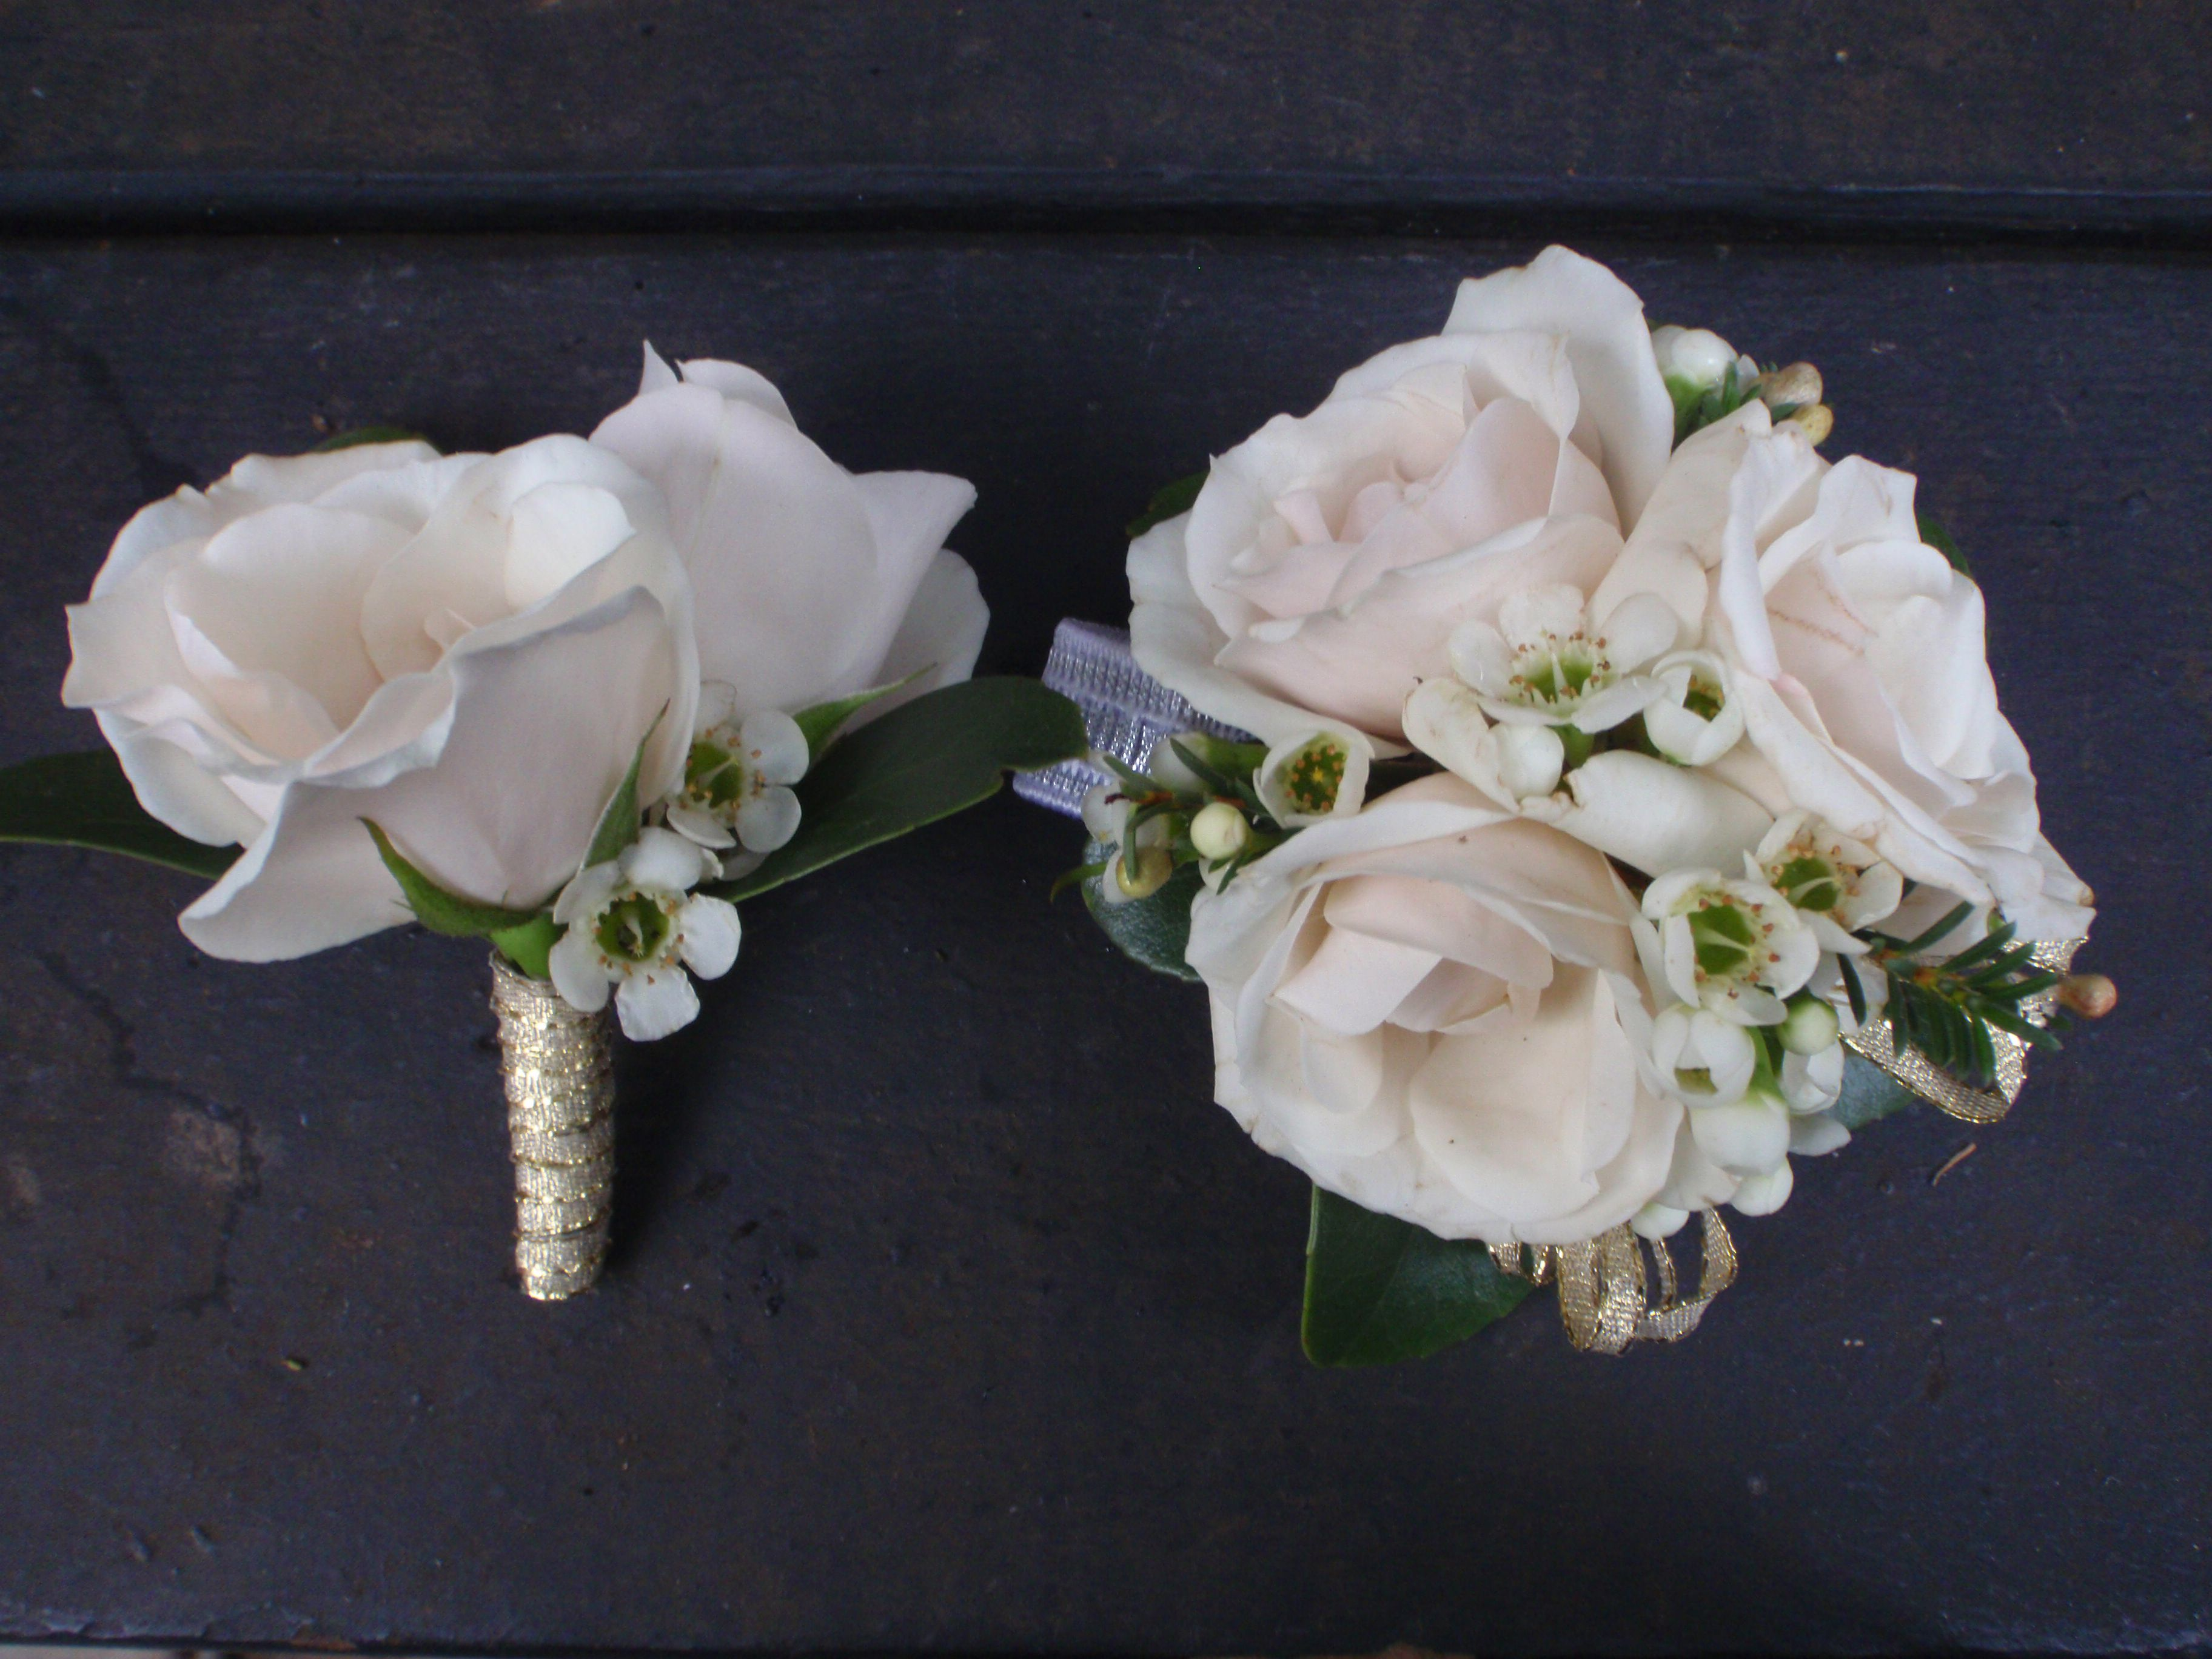 Garden Rose Boutonniere matching boutonniere and corsage with white spray roses | corsages